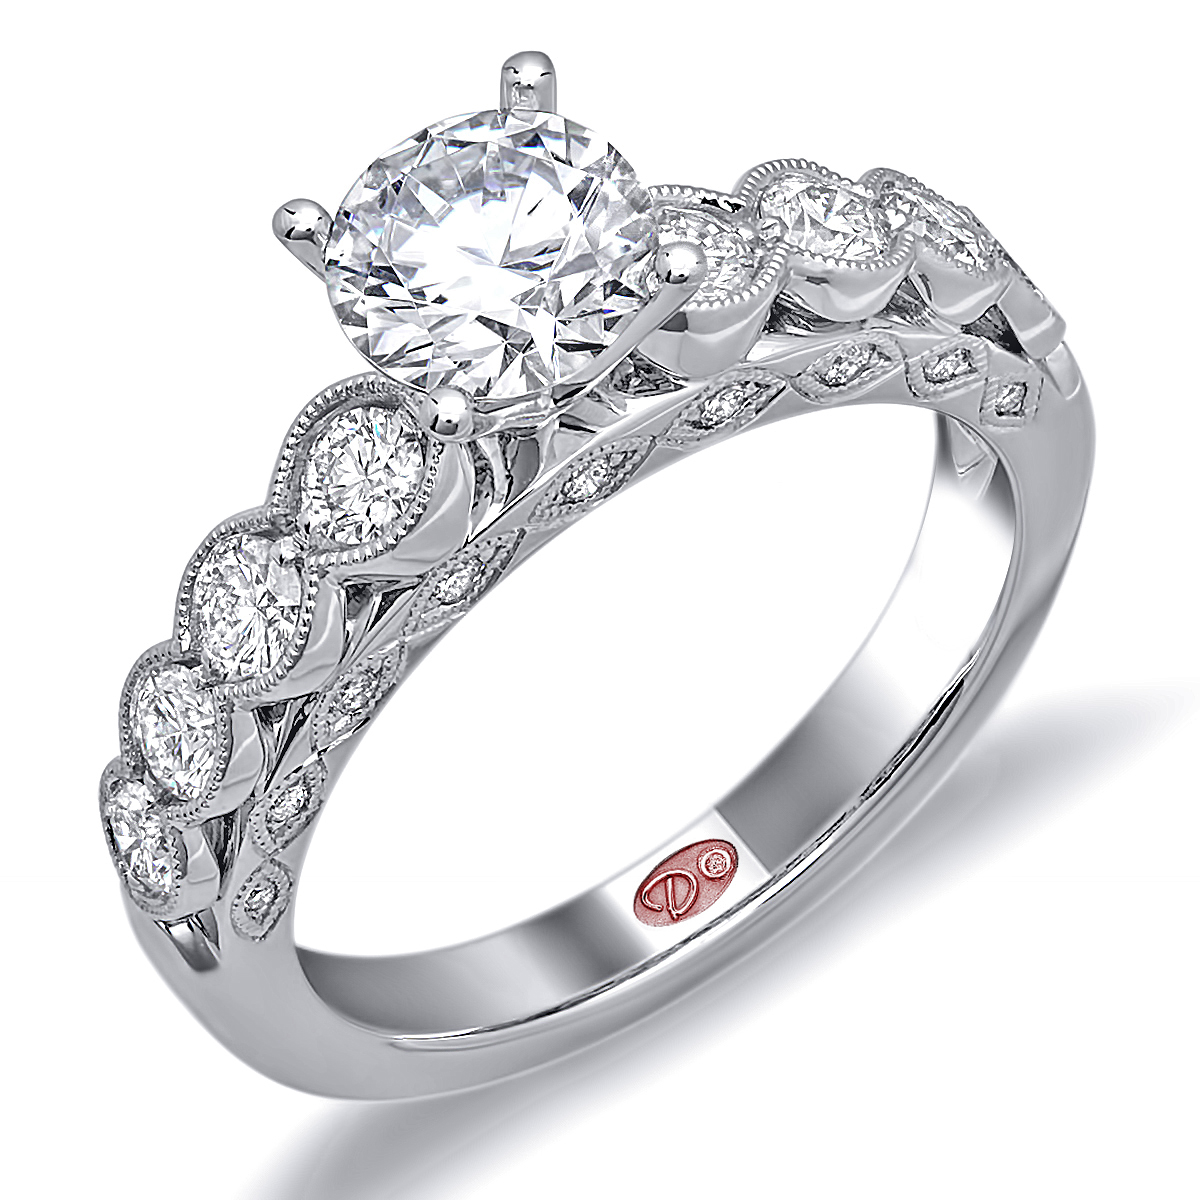 Designer Engagement Rings In Independence